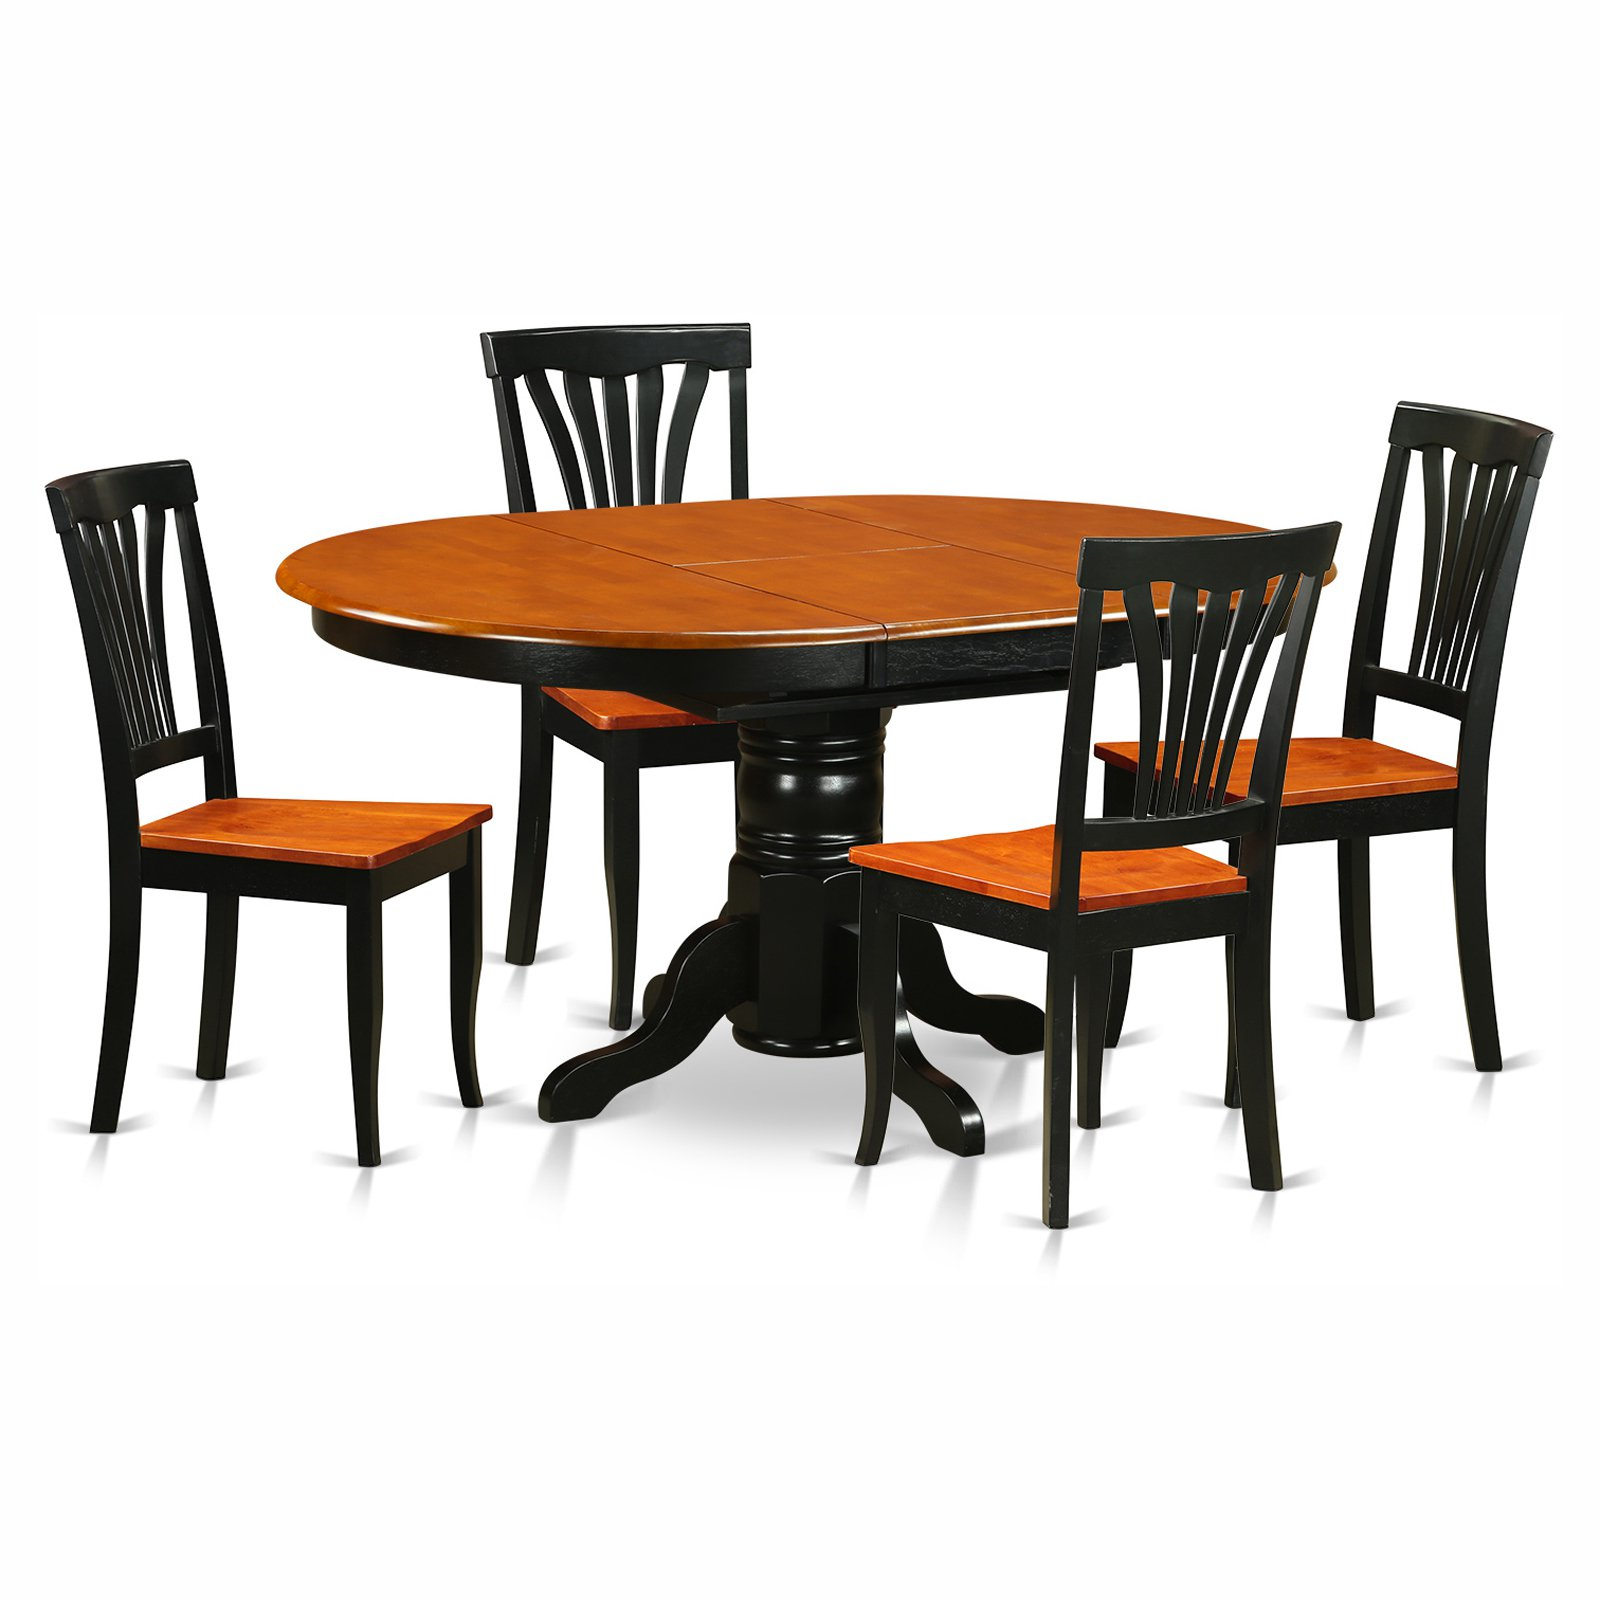 East West Furniture Avon 5 Piece Pedestal Oval Dining Table Set with Wooden Seat Chairs